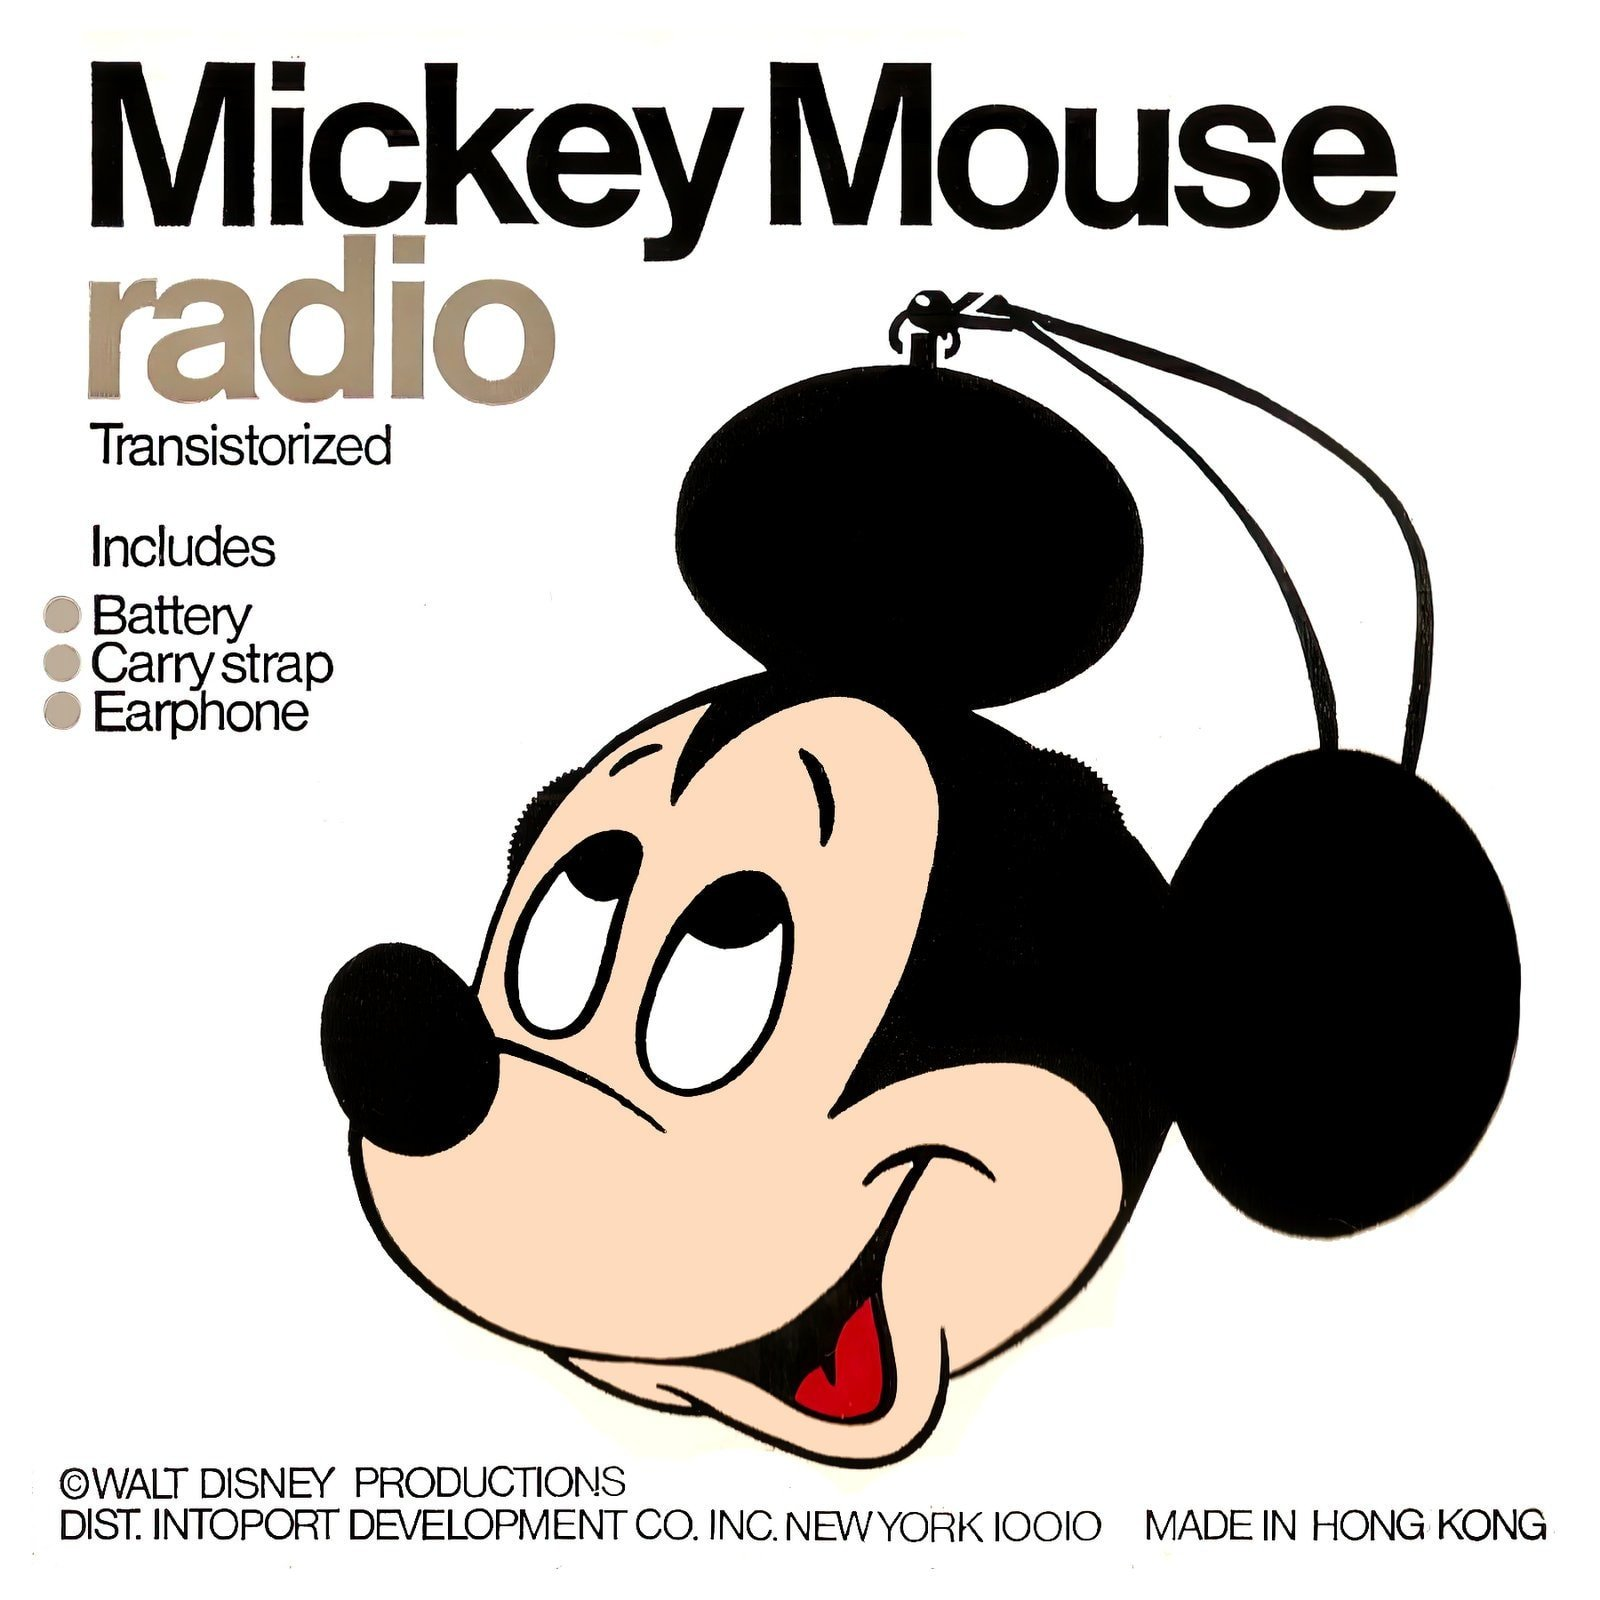 Vintage Mickey Mouse portable radio for kids